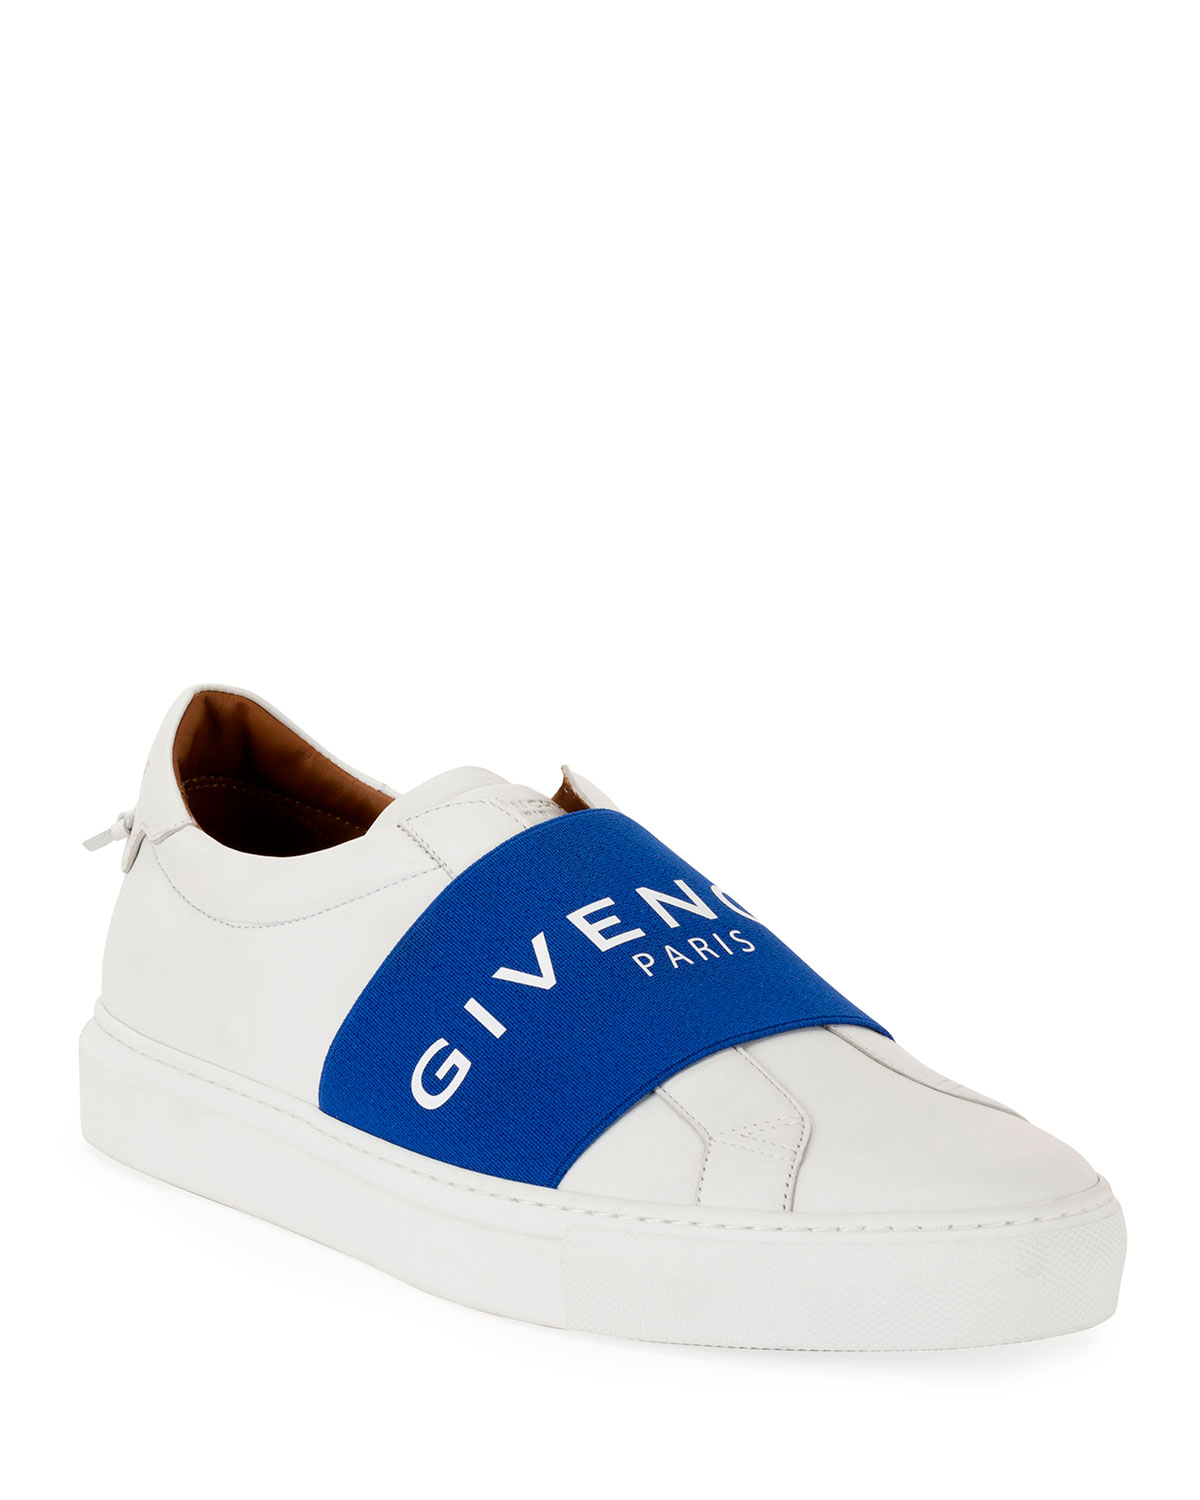 a254dc36dae Givenchy Men s Urban Street Elastic Slip-On Sneakers